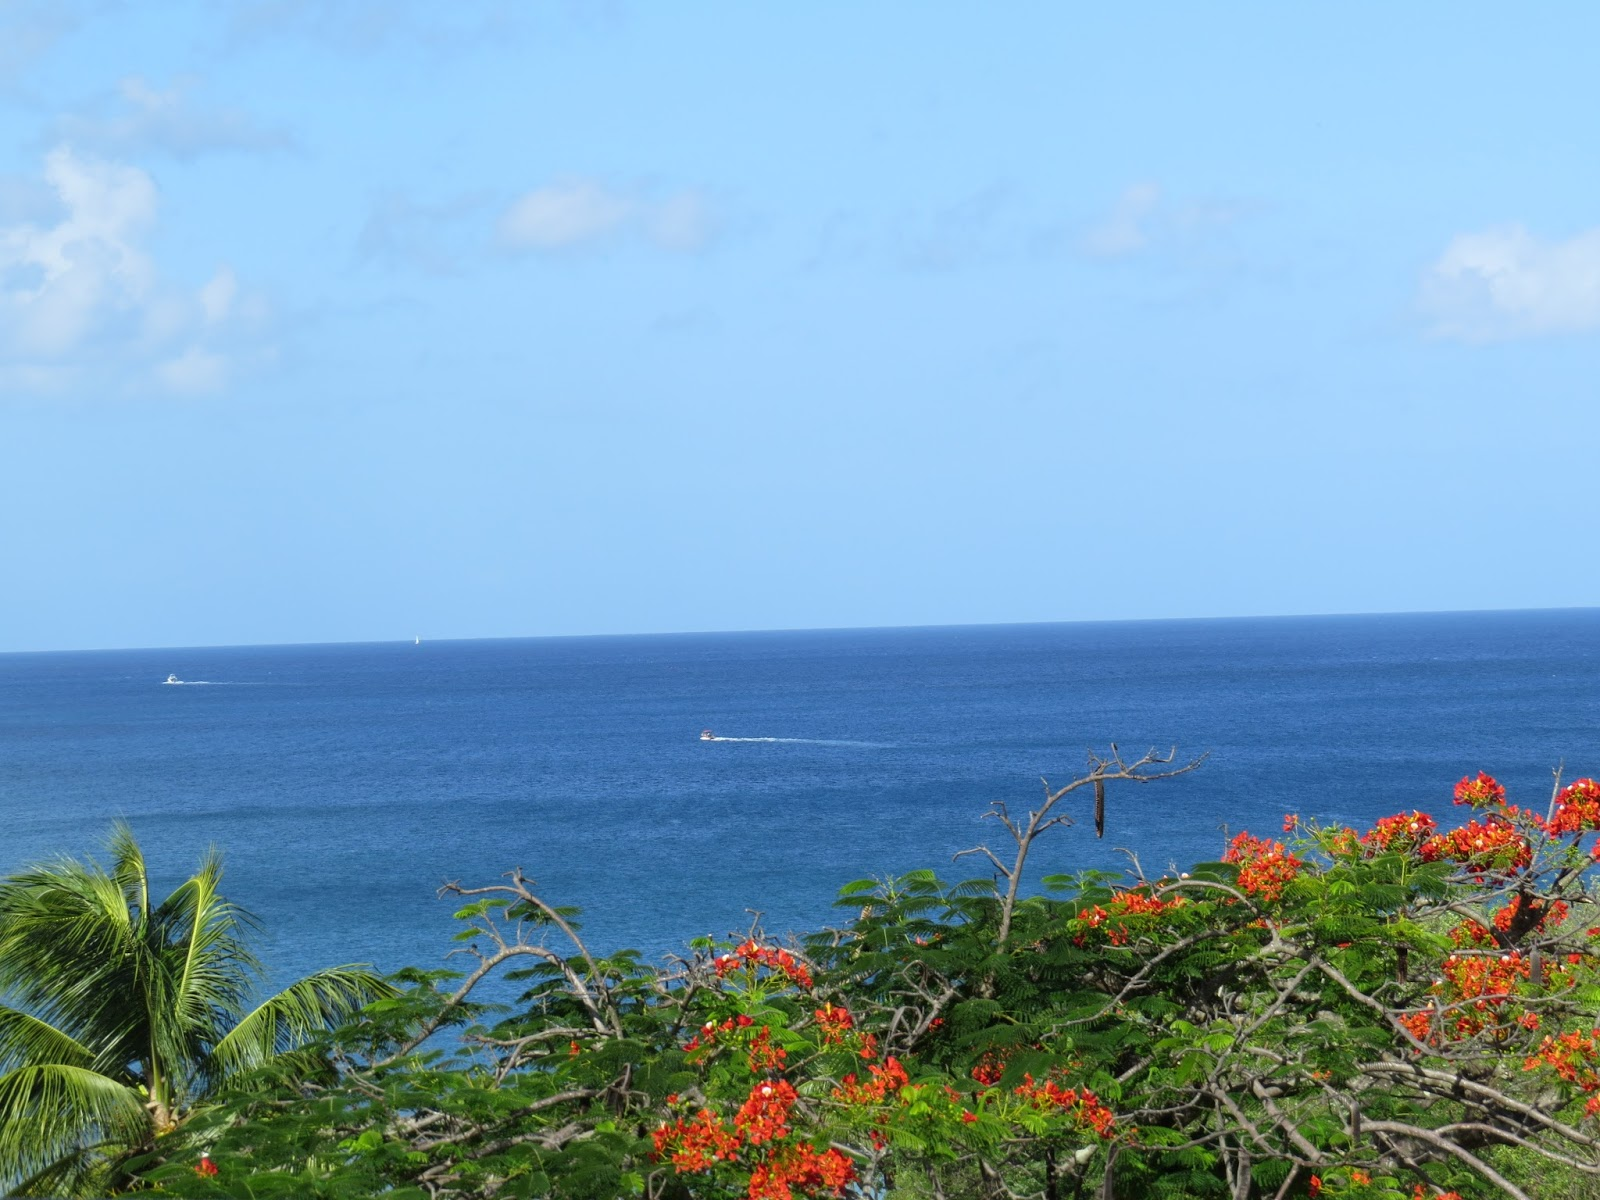 View from our hotel room of the Caribbean Sea